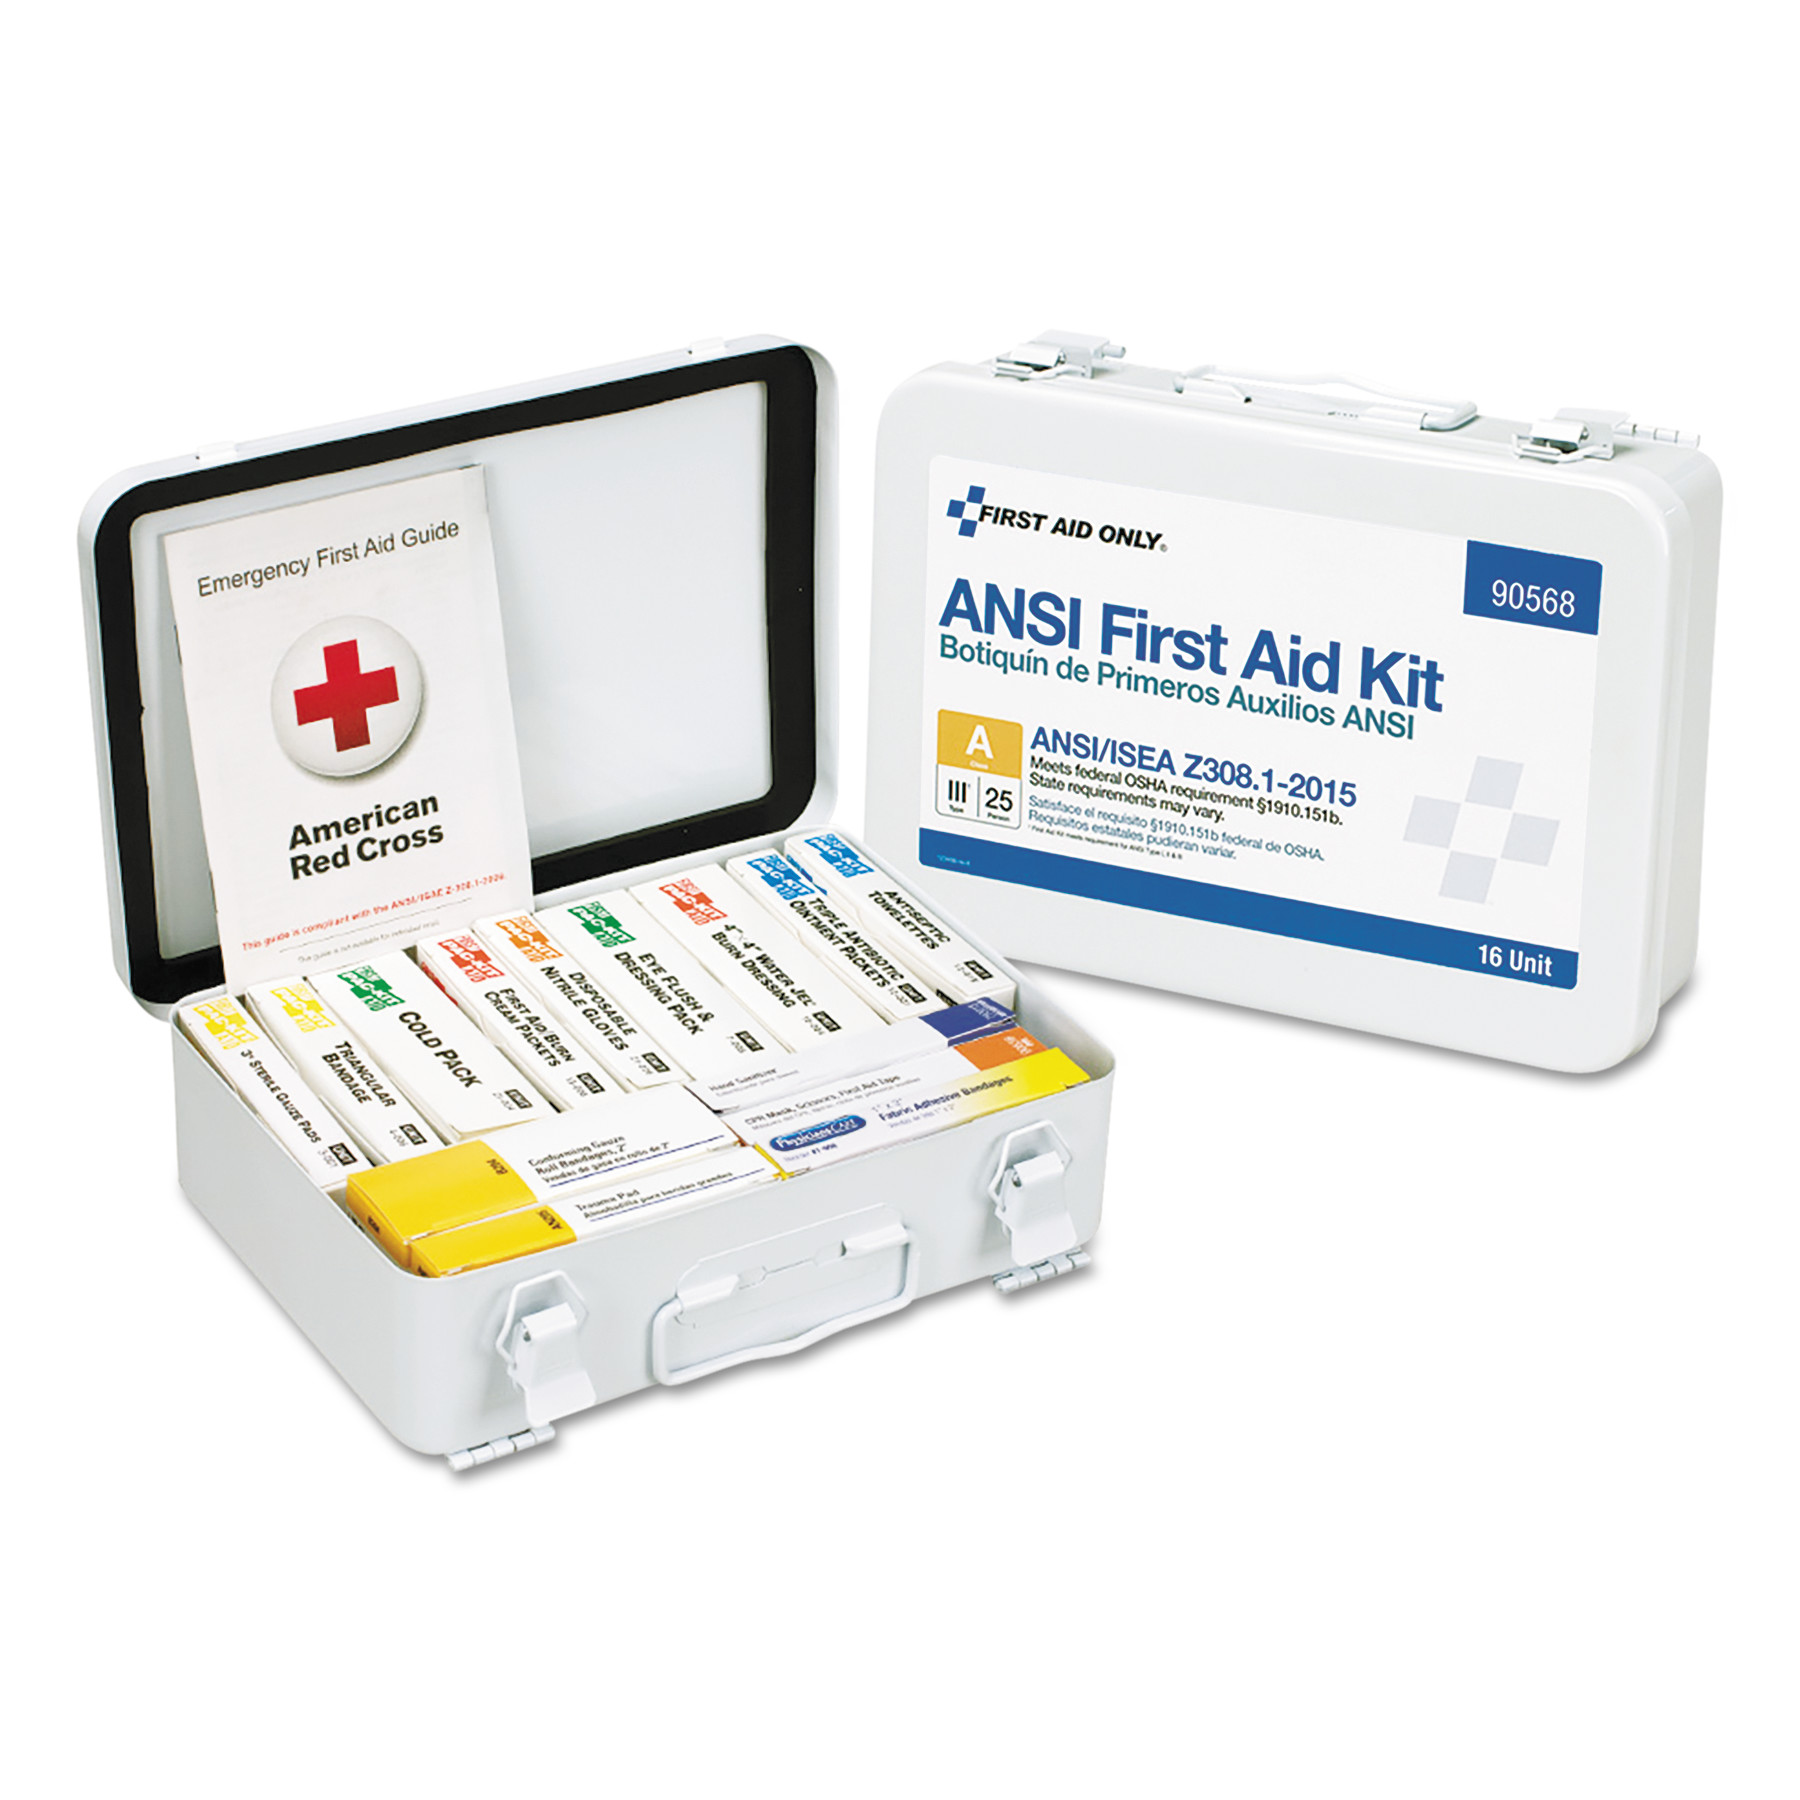 First Aid Only Unitized ANSI Compliant Class A Type III First Aid Kit for 25 People, 16 Units